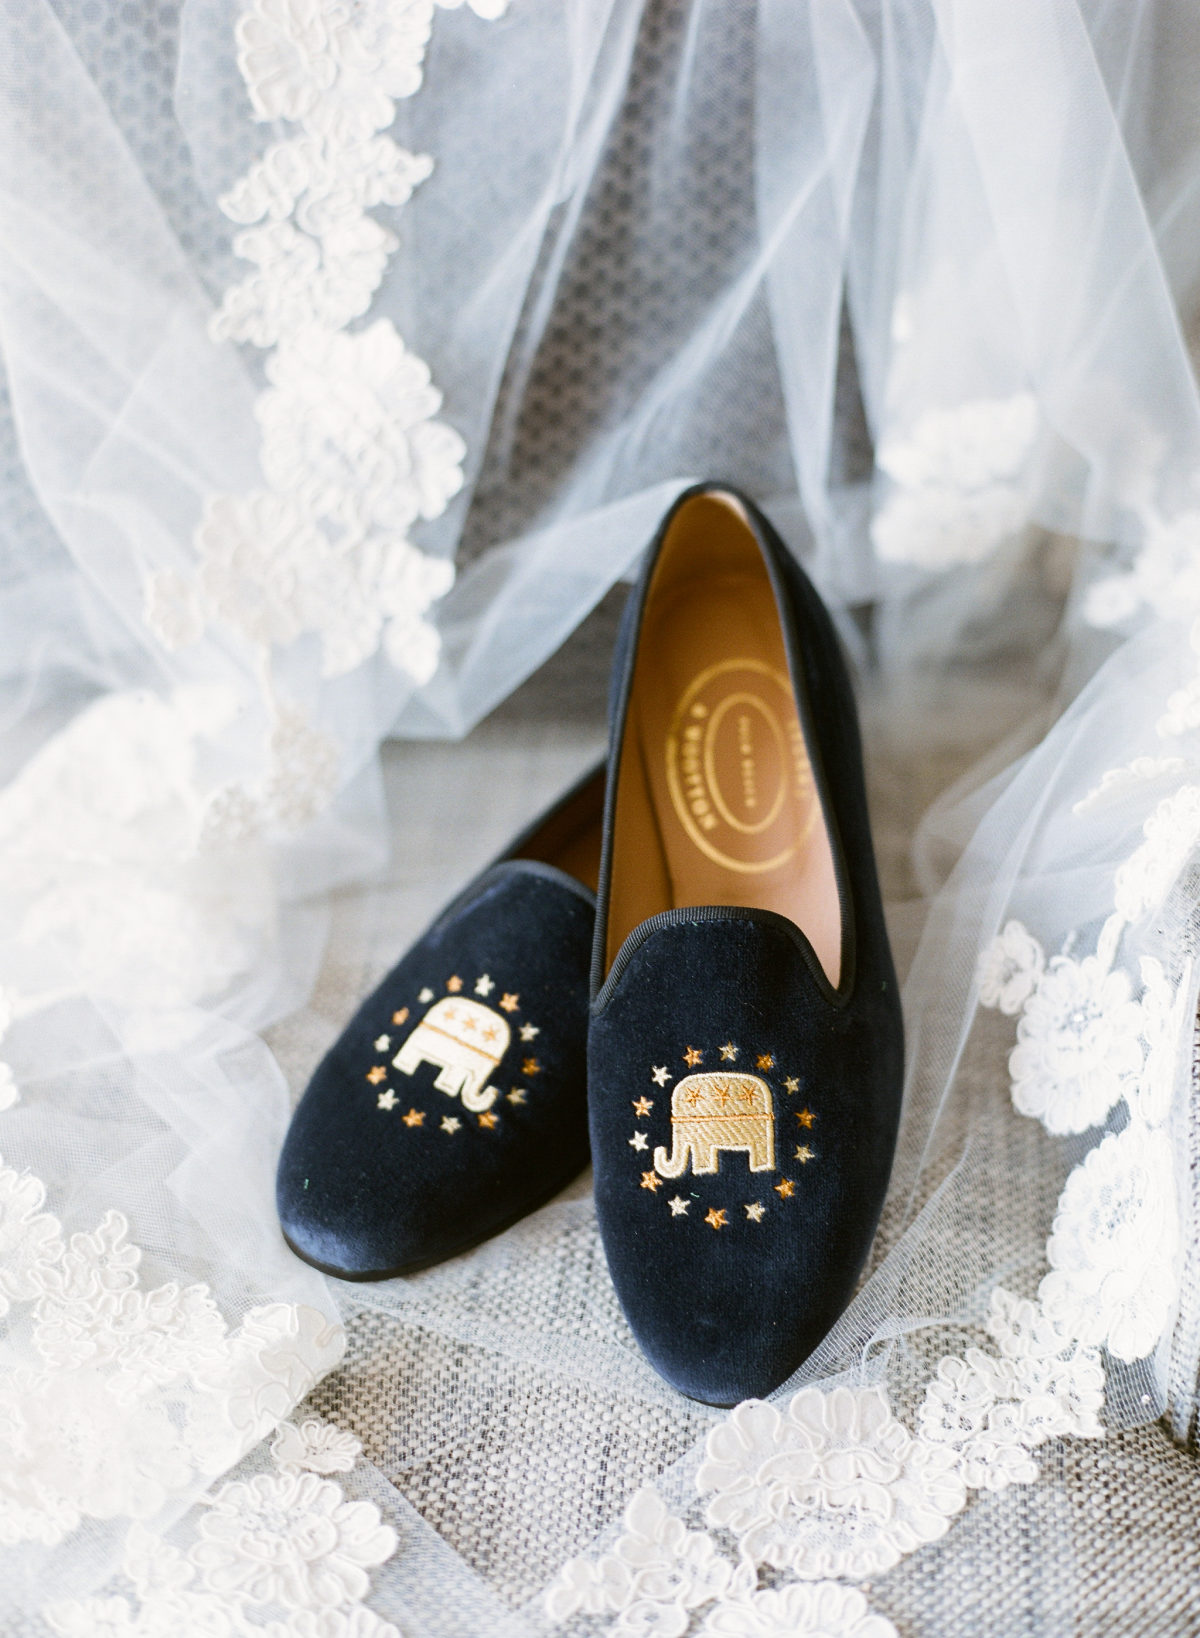 Shoes: Stubbs & Wootton (Image: Abby Grace Photography/ abbygracephotography.com)